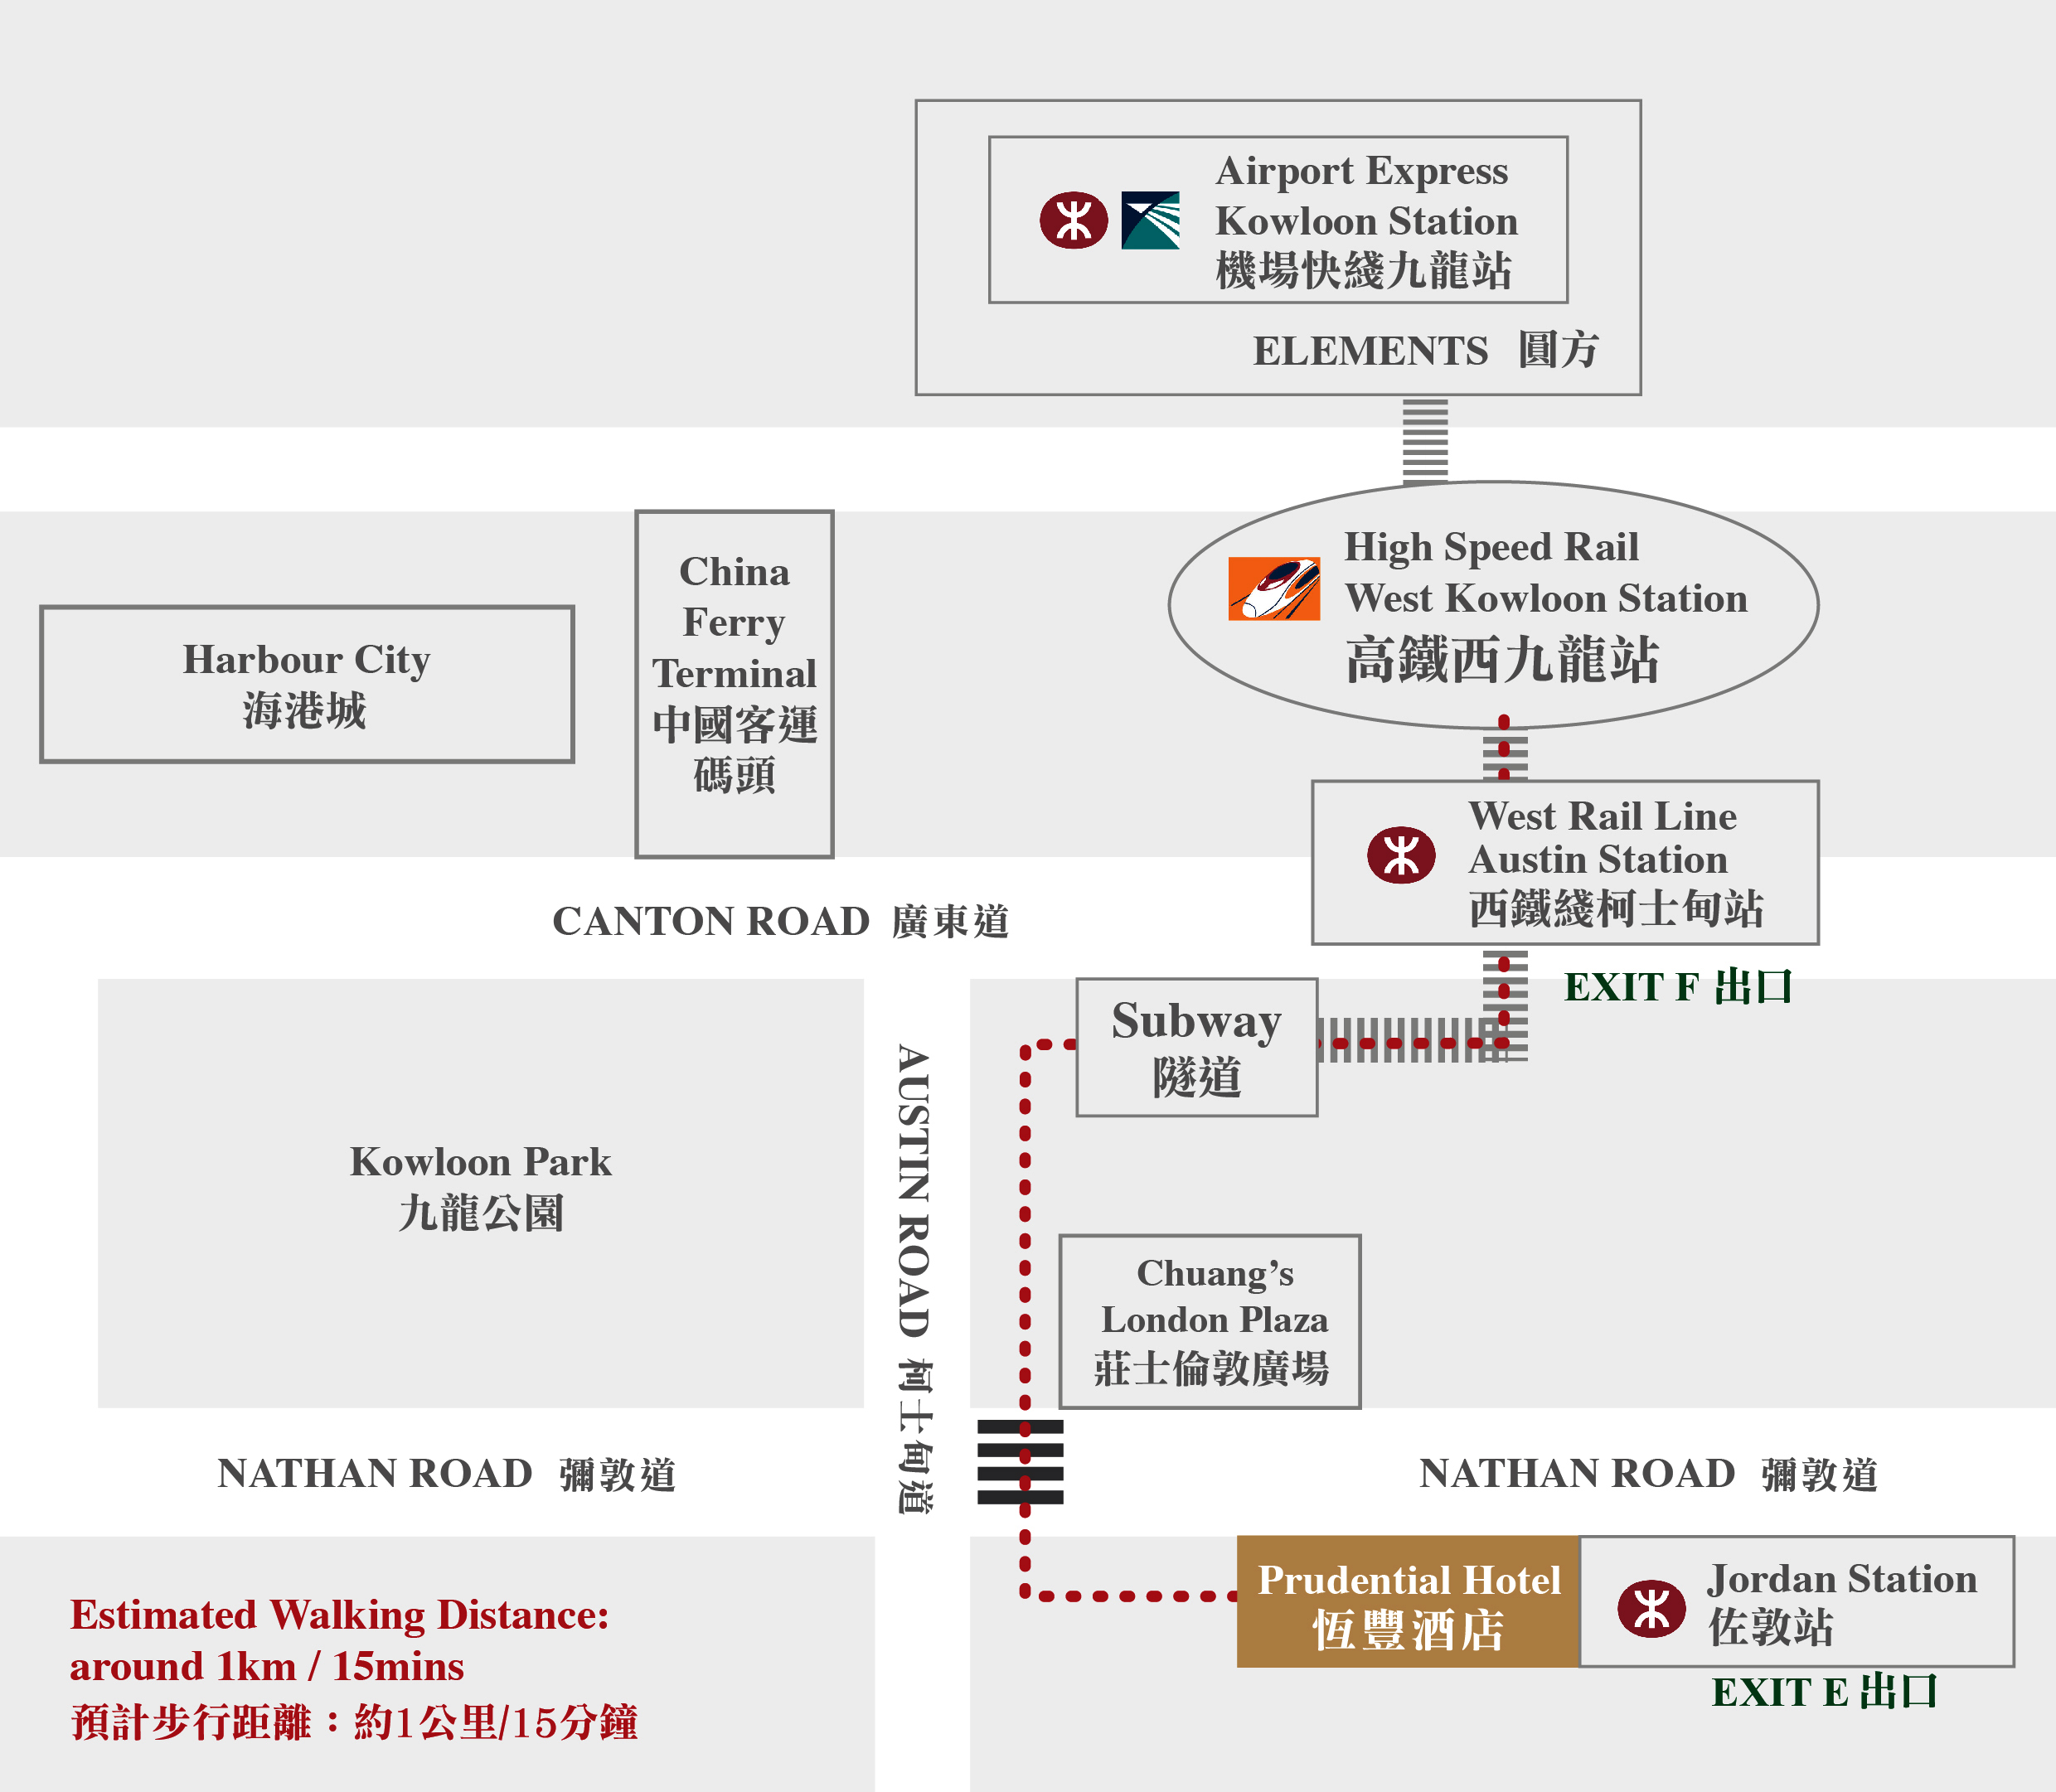 Area Information - Hong Kong Hotel - Prudential Hotel